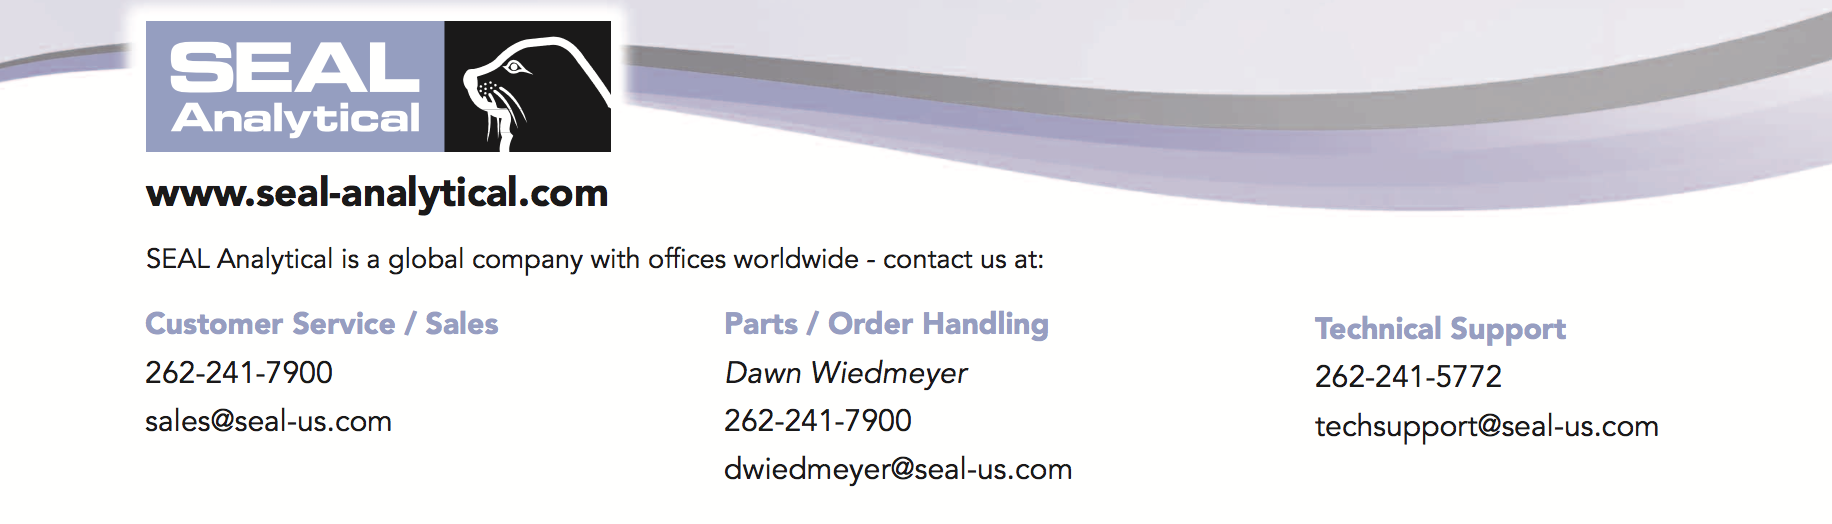 Contact SEAL Analytical